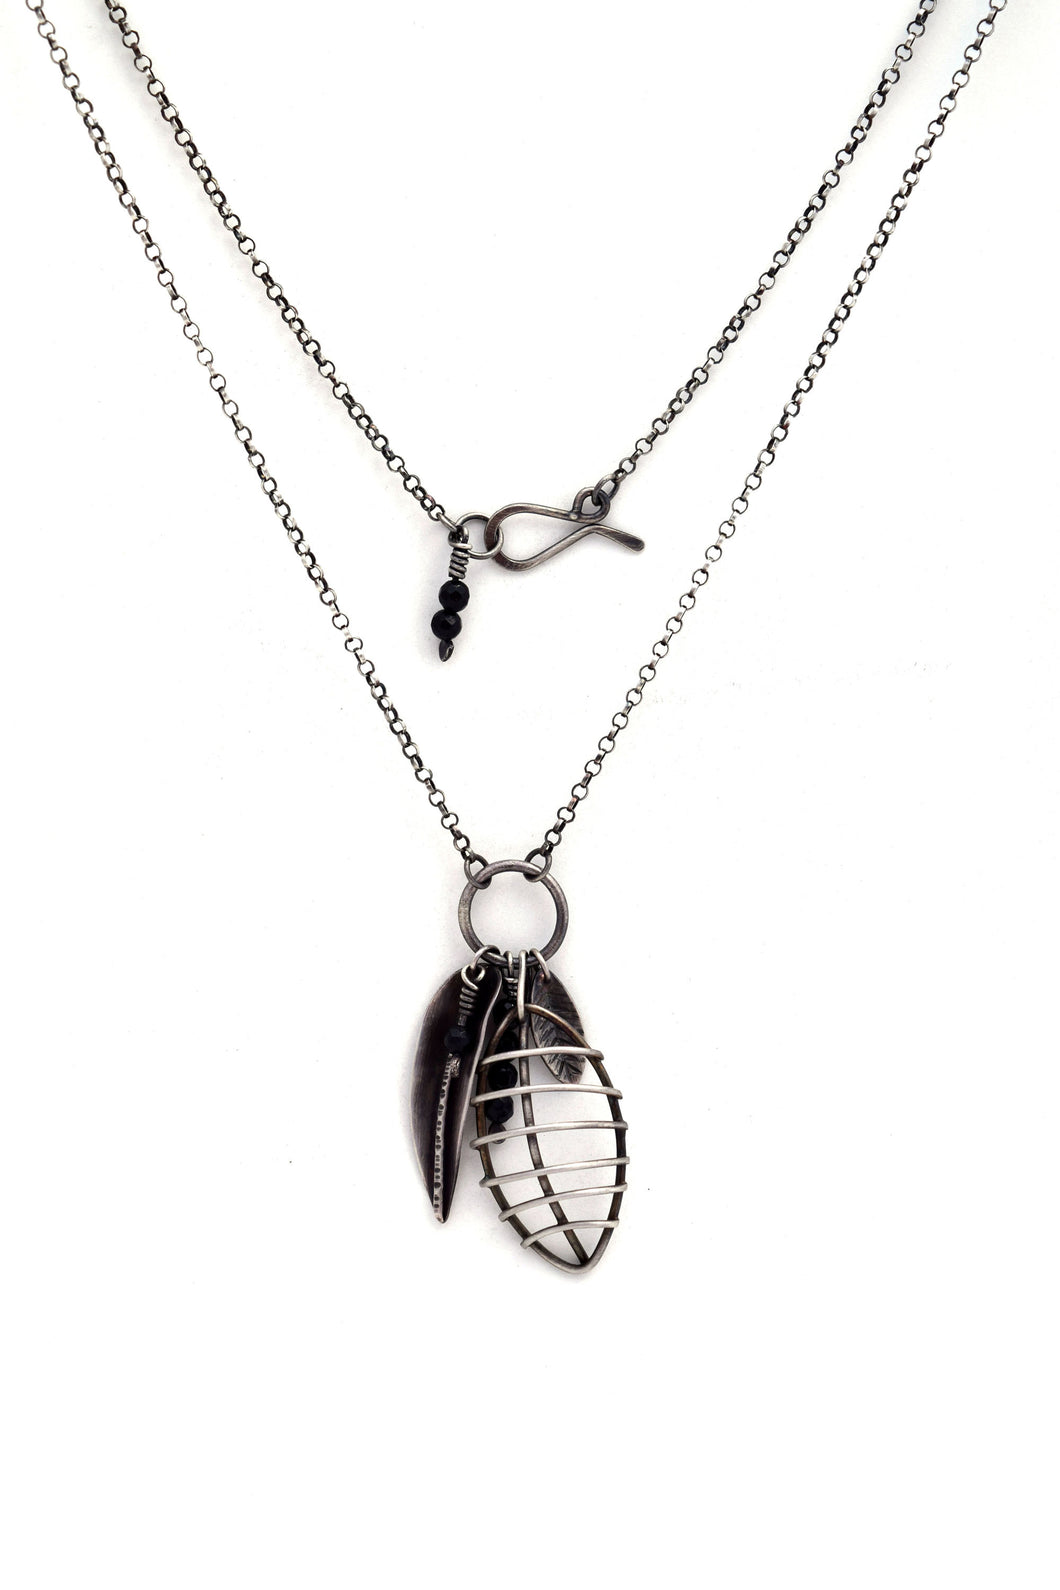 Long Sterling Silver Necklace, Rustic Botanical Pendant with Handcrafted Leaves and Onyx Beads